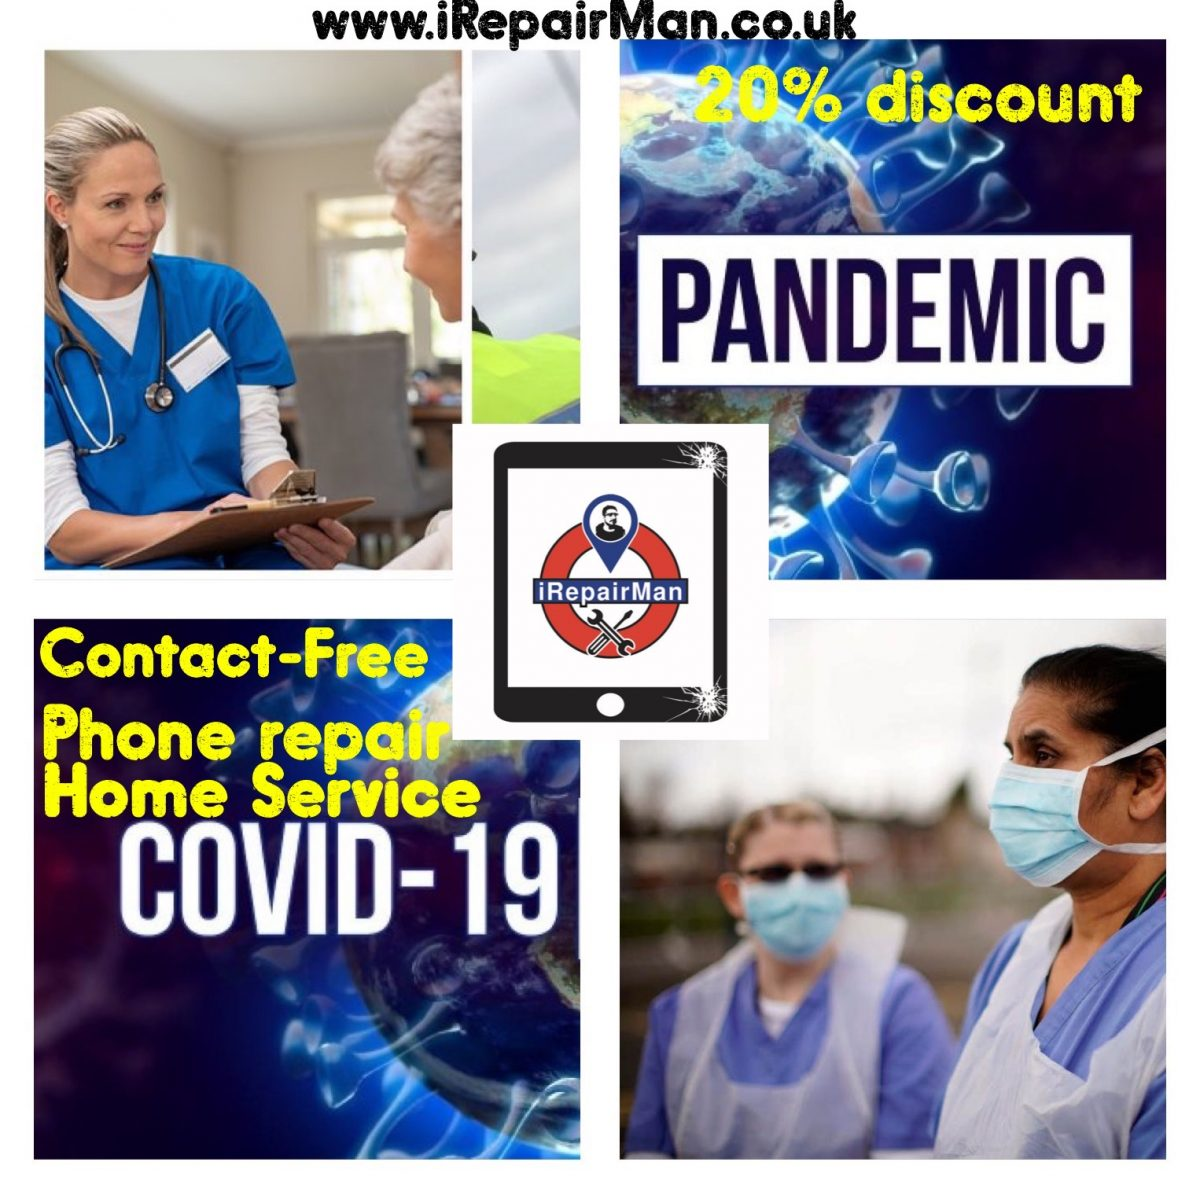 Discount for Key worker staff in COVID 19 Pandemic in London